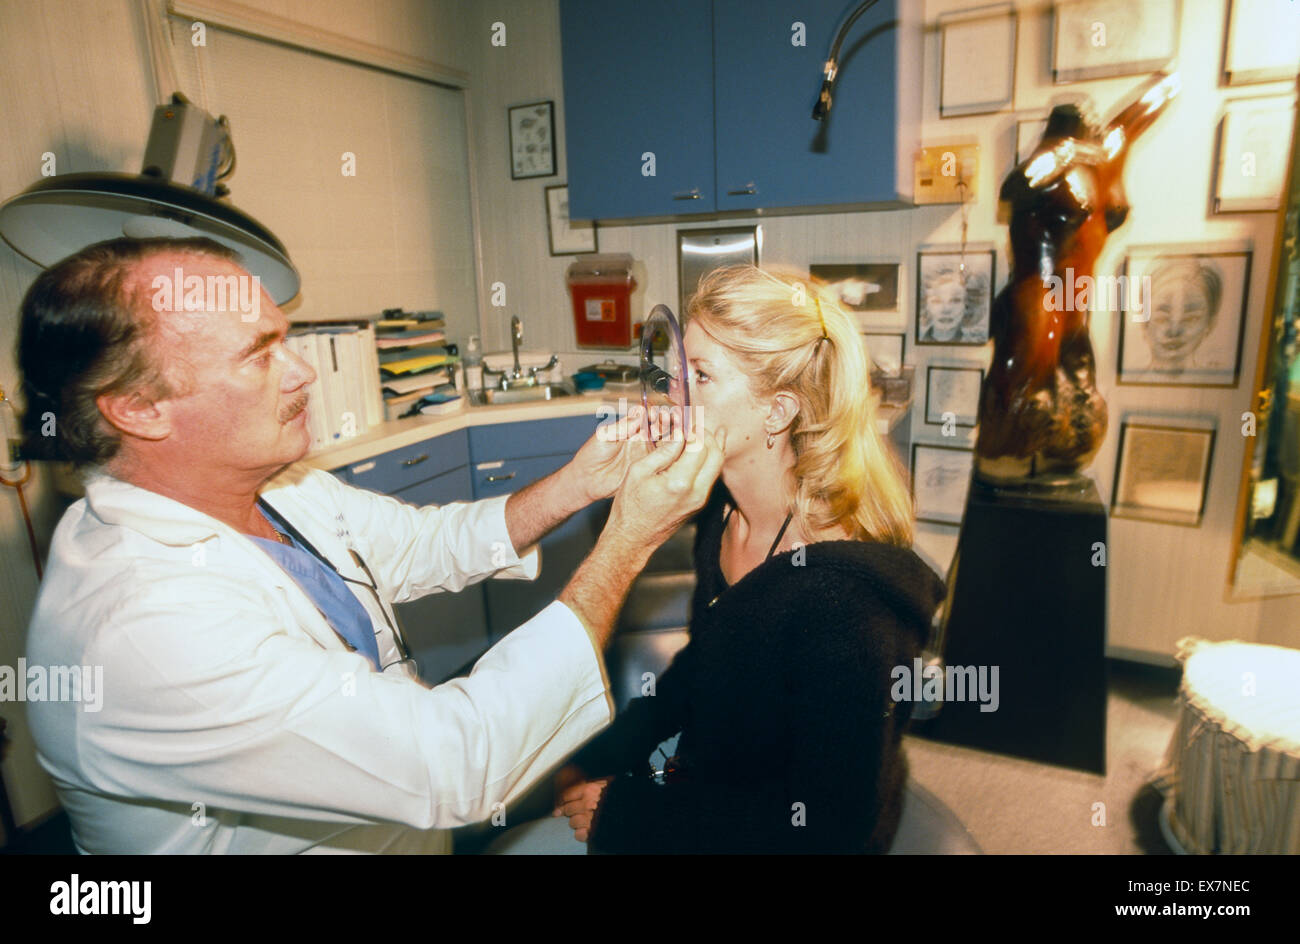 BEVERLY HILLS, CA – MAY 19: Celebrity plastic surgeon Dr